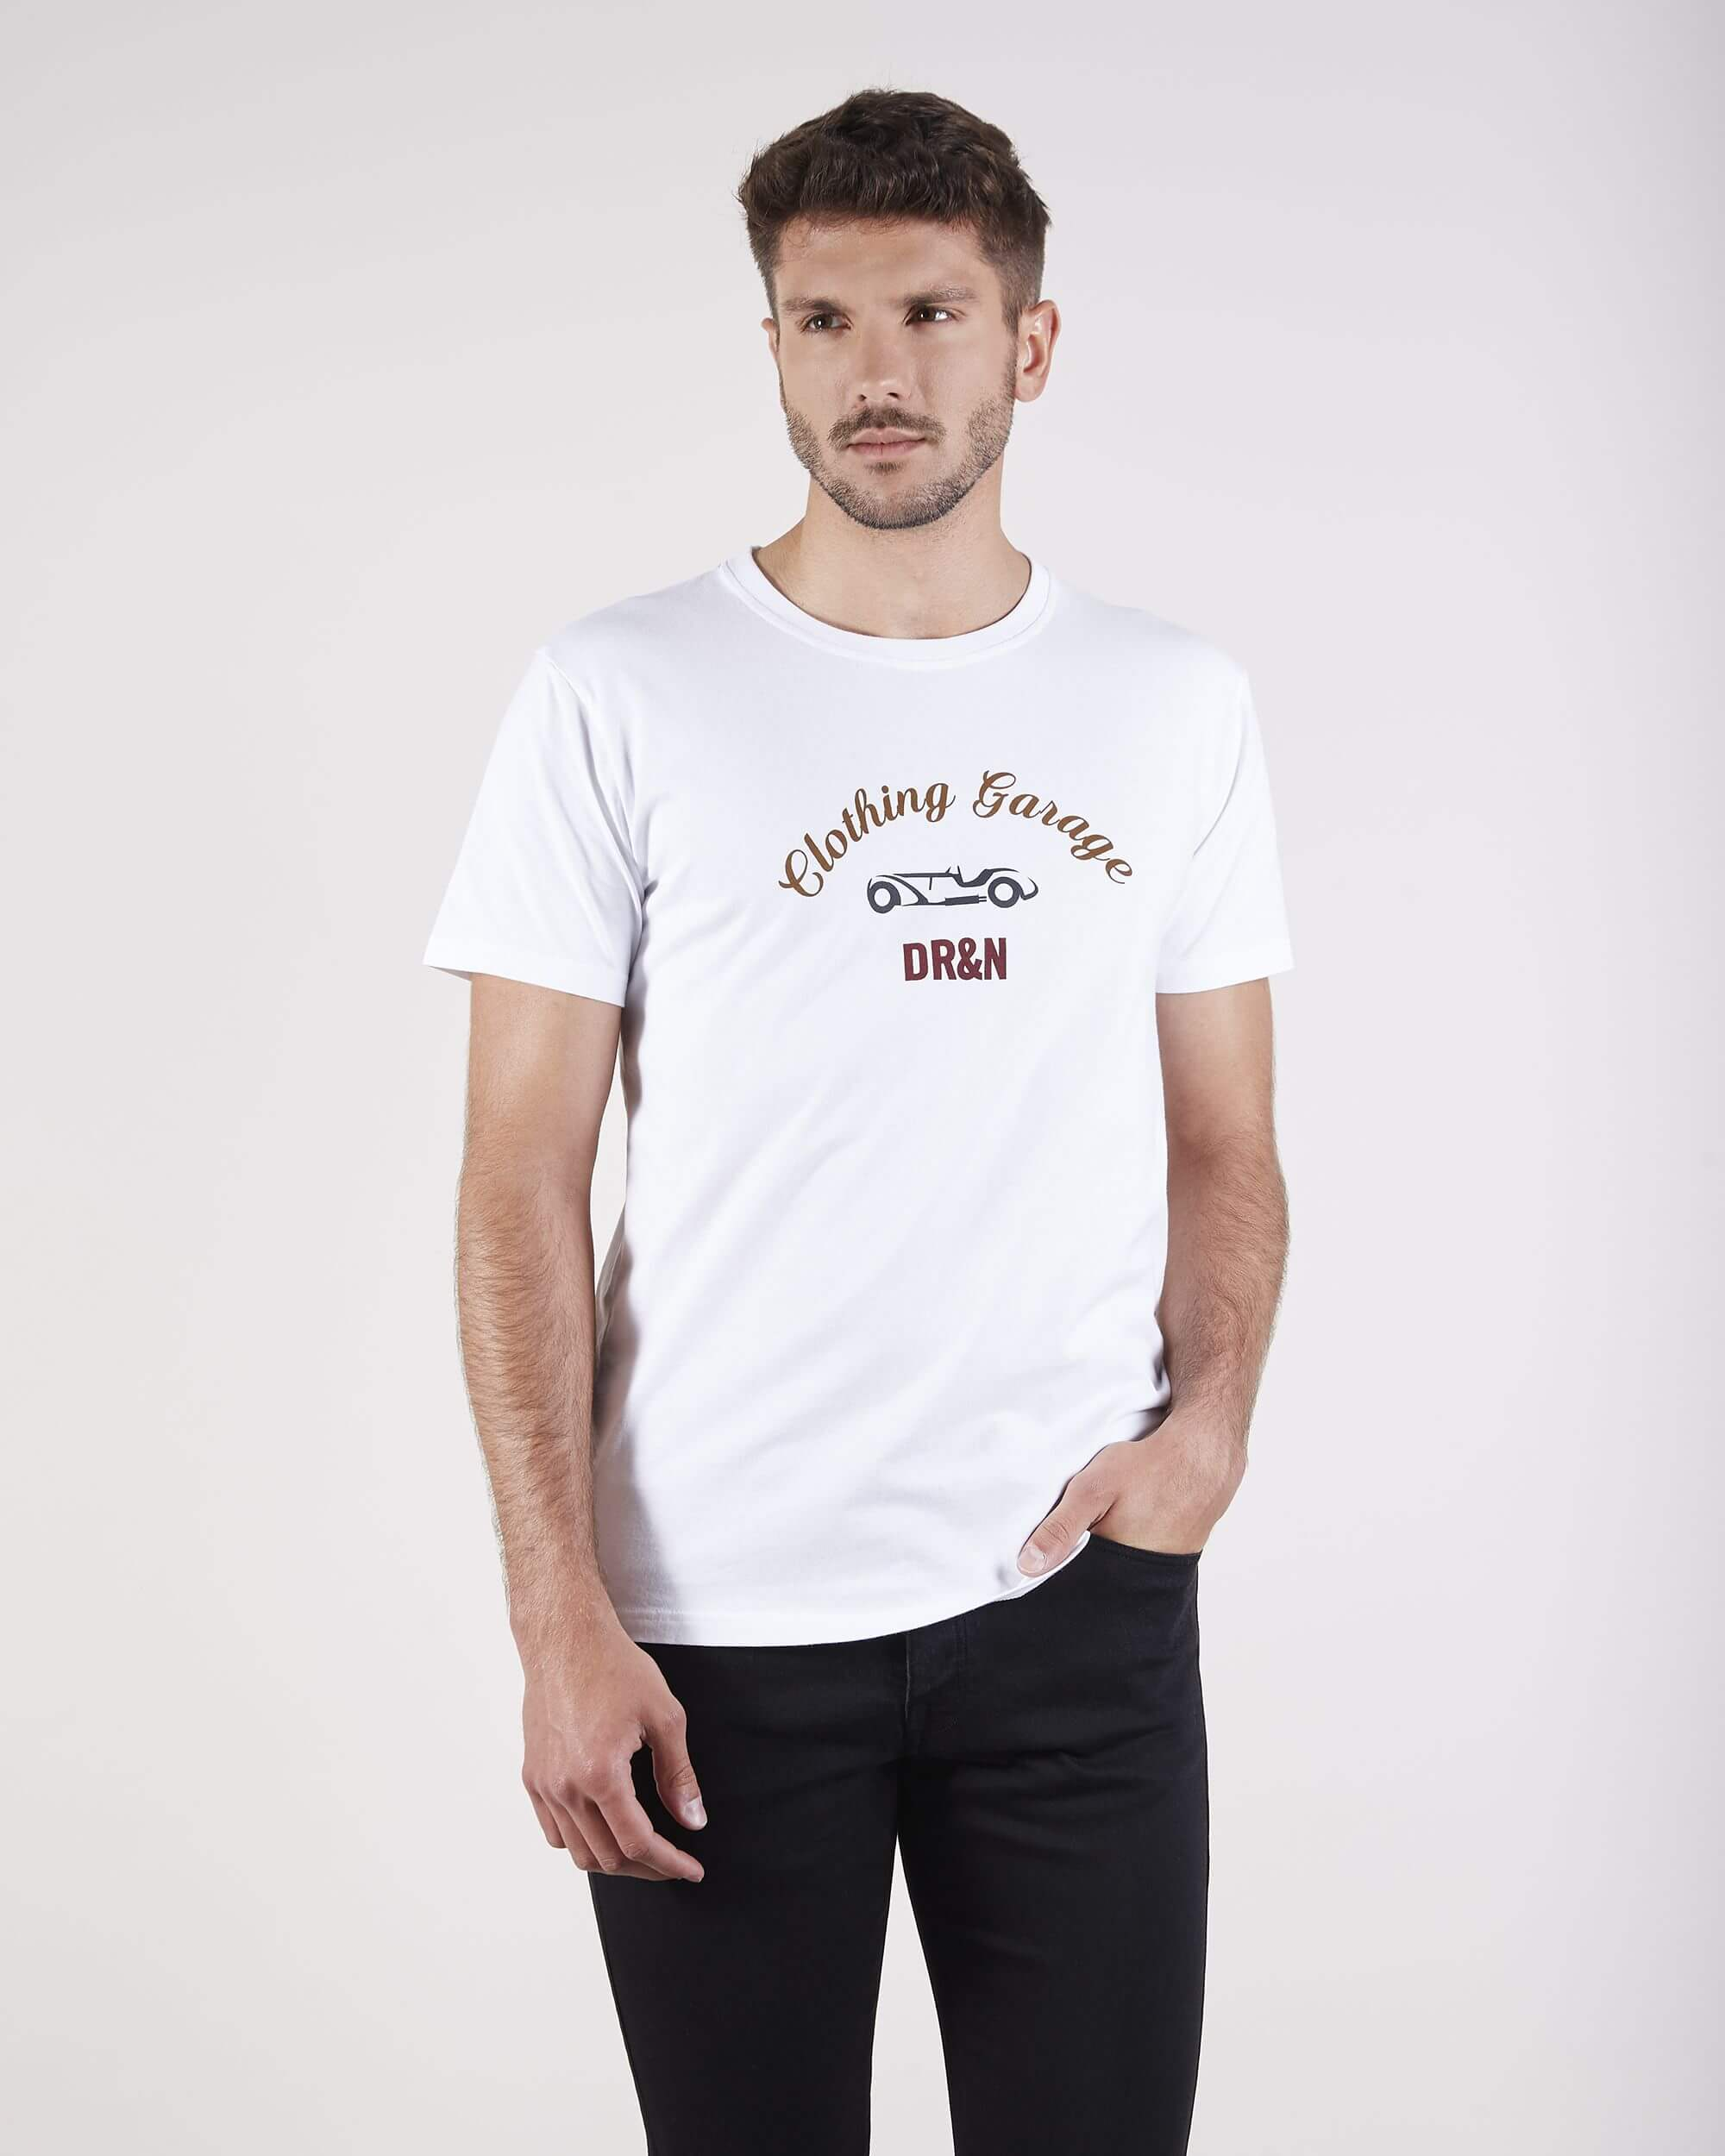 Camiseta Clothing Garage